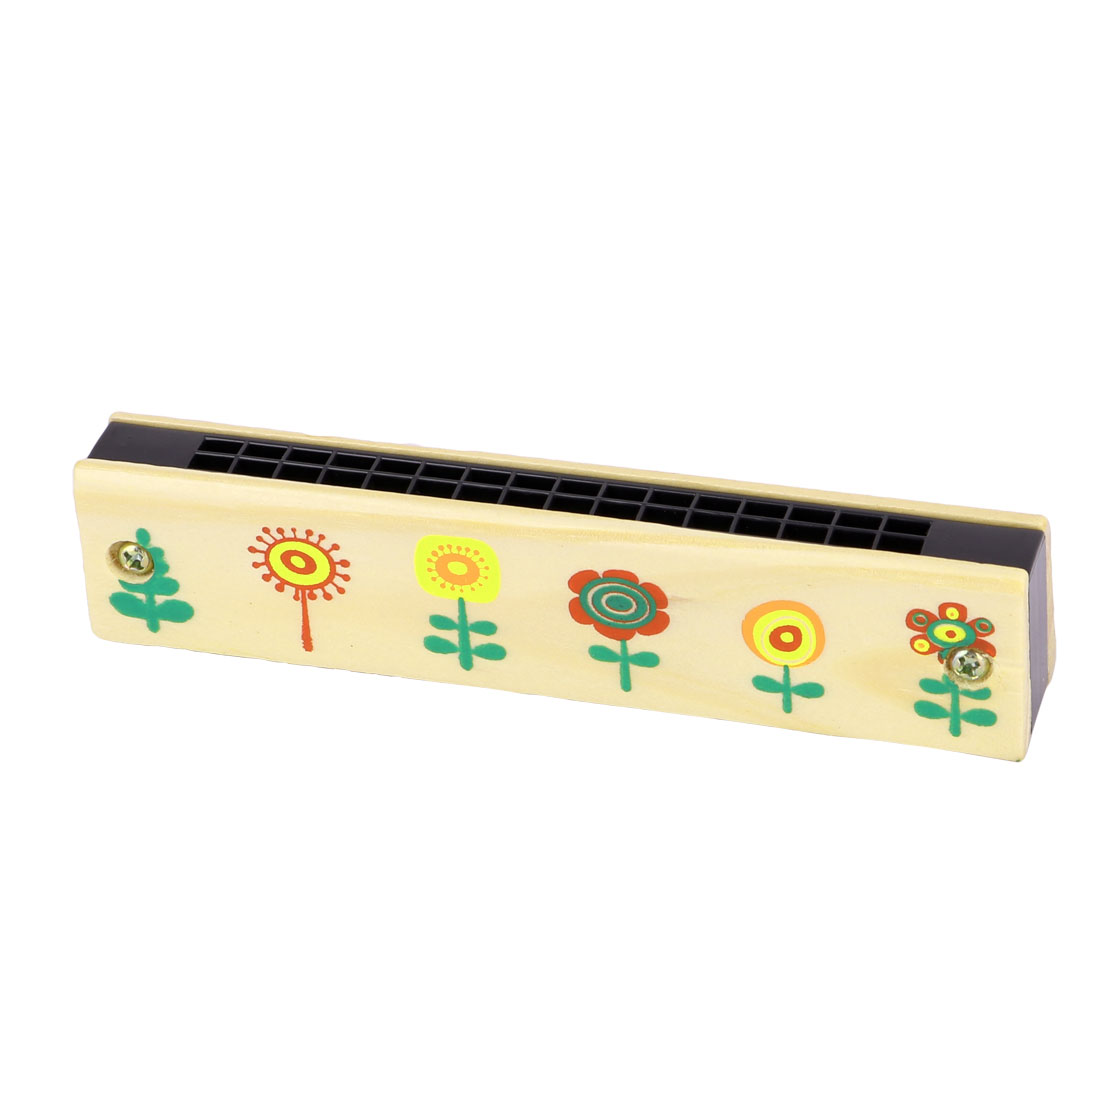 Unique BargainsWooden Flower Pattern Early Education Dual Rows Harmonica Musical Instrument - image 3 of 3